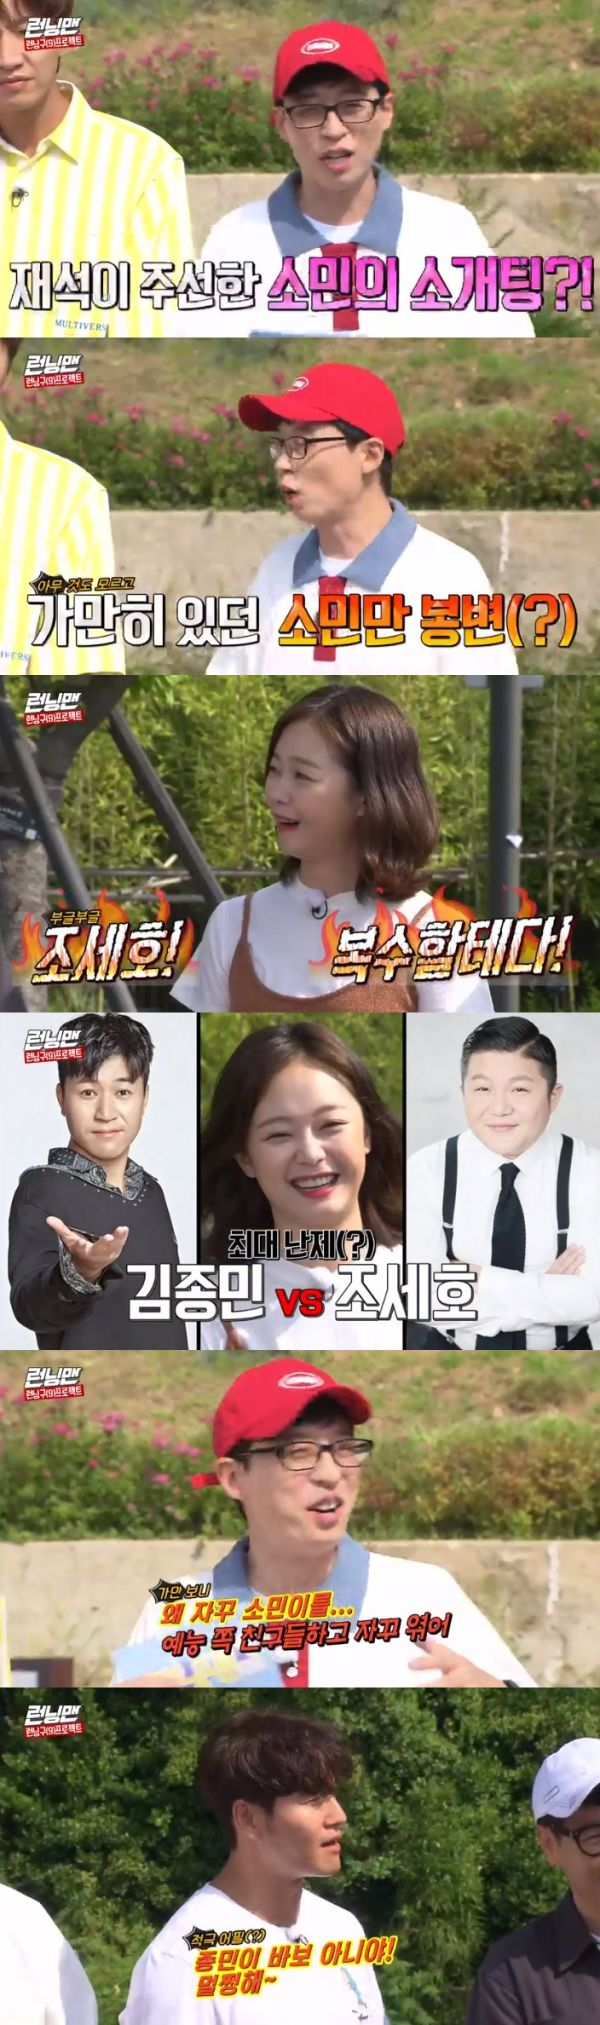 <p> Running ManIn Yoo Jae Suk this Jeon So-min in Apple I was.</p><p>23 broadcast SBS TV Running Manin running the research project is decorated, among singers young and learning the Yeti has appeared as a guest said.</p><p>This day, Running Man members of the recent talk of Yoo Jae Suk this Jeon So-min on the American Day mentions that there were.</p><p>Ahead of time in the broadcast, Yoo Jae Suk is Jose and I met, and the lonely tax code to Jeon So-min is How asked would. To this Yoo Jae Suk is the small people story came out, which people to ask a doctor hadnt said,sorry said.</p><p>Jeon So-min is that the broadcast did, a brother broadcast is a good story although he would be completely well chew expression was,he said to laughter, I found myself in.</p><p>This Ive heard, Kim Jong Kook I am Ada and Id recommend it. Species people like,he said.</p><p>To this Yoo Jae Suk is why do Jeon So-min, for example, the function-side friends together becausehe noted.</p><p>So proceed with Jeon So-min of the target torque. Jeon So-min is Kim Jong Kook and number one and said that in Nanchang, we choose to laugh more. He said: the window unto my brother sing well toand the reason explained.</p><p>This one to Kim Jong the people shes dancing while singinghigh, Kim Jong Kook is often the people that the singerand felt like crying laugh more.</p>